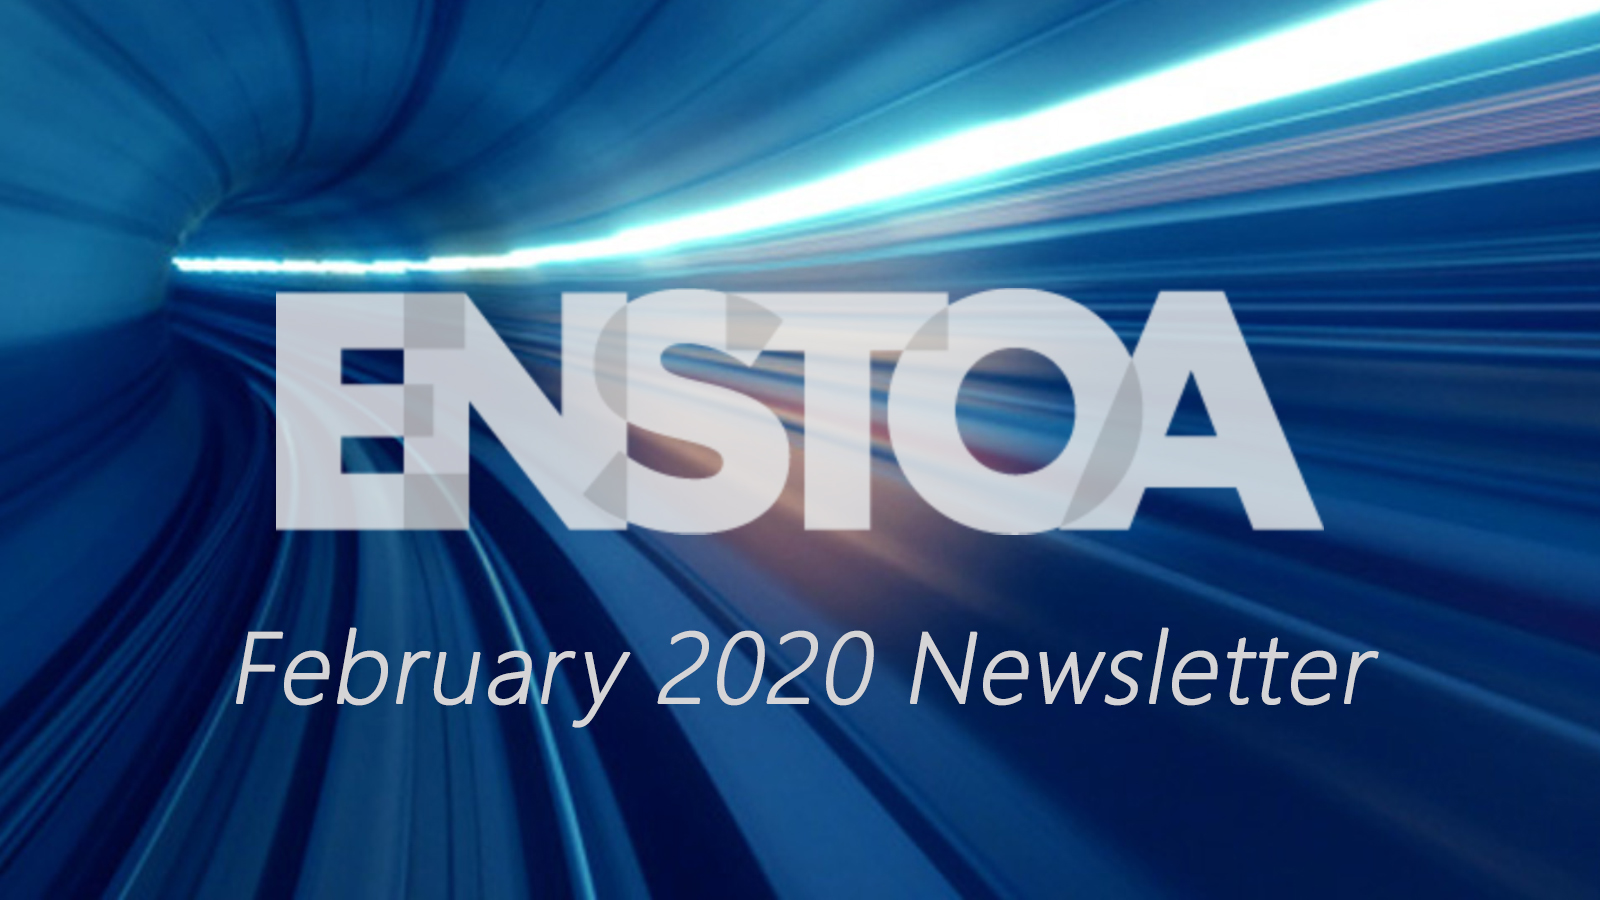 February 2020 Newsletter: Enstoa Selected as Oracle 2020 Global Events Platinum Sponsor